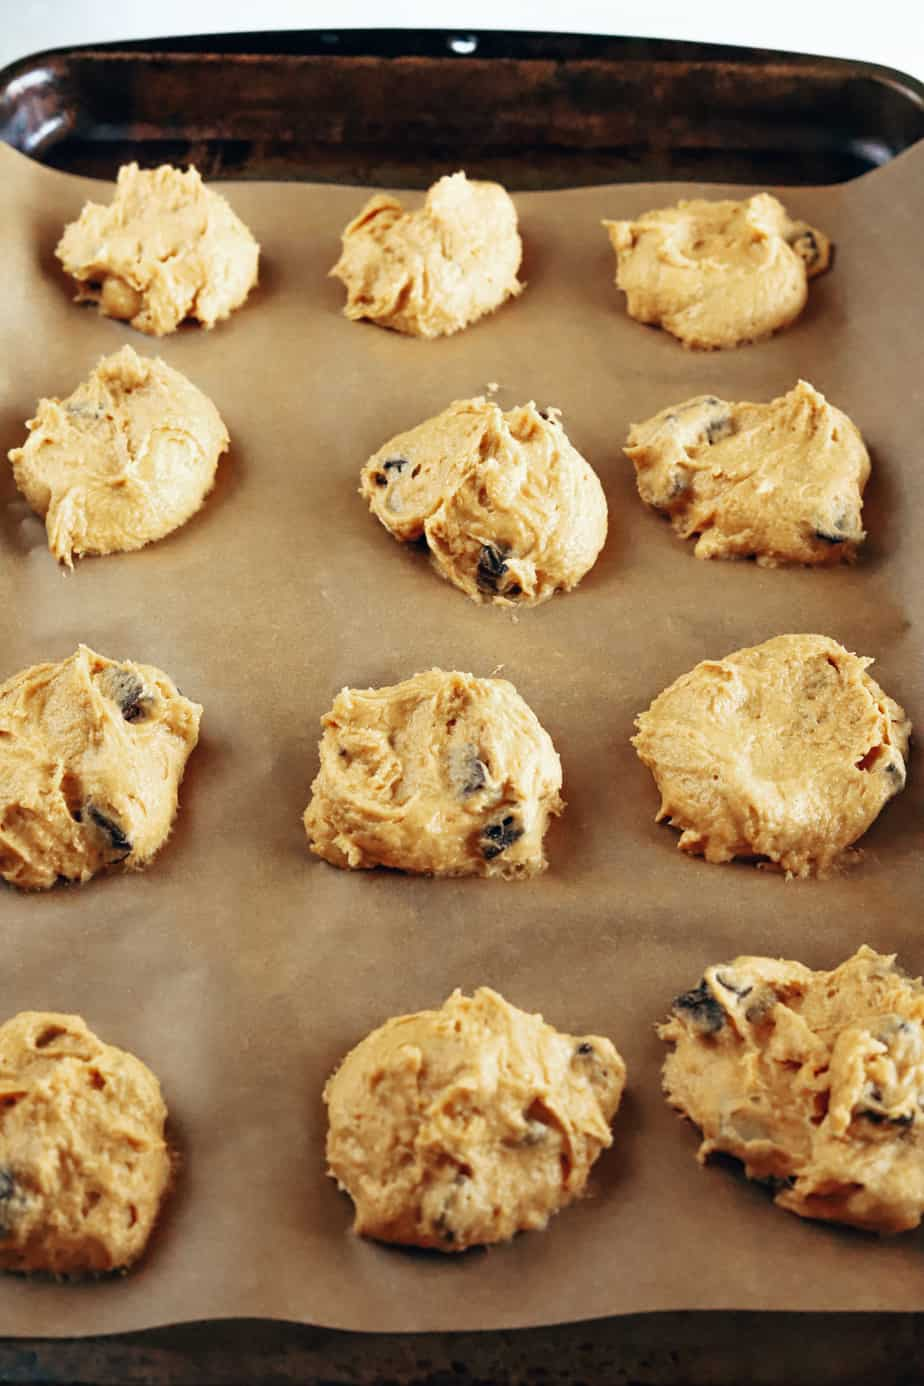 Cookie dough is scooped an arranged on a baking sheet lined with brown parchment paper